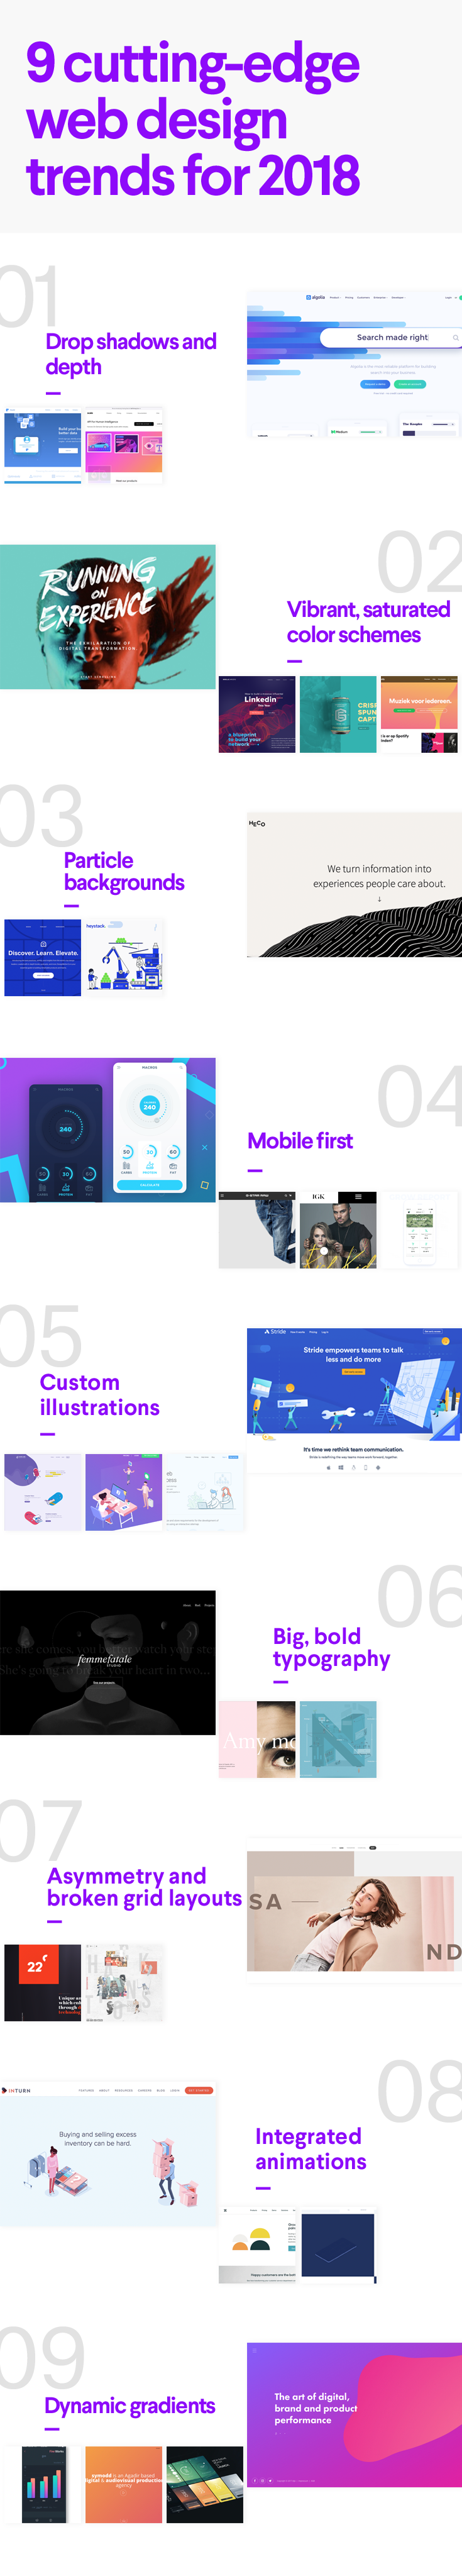 Pin On Graphic Design Trends